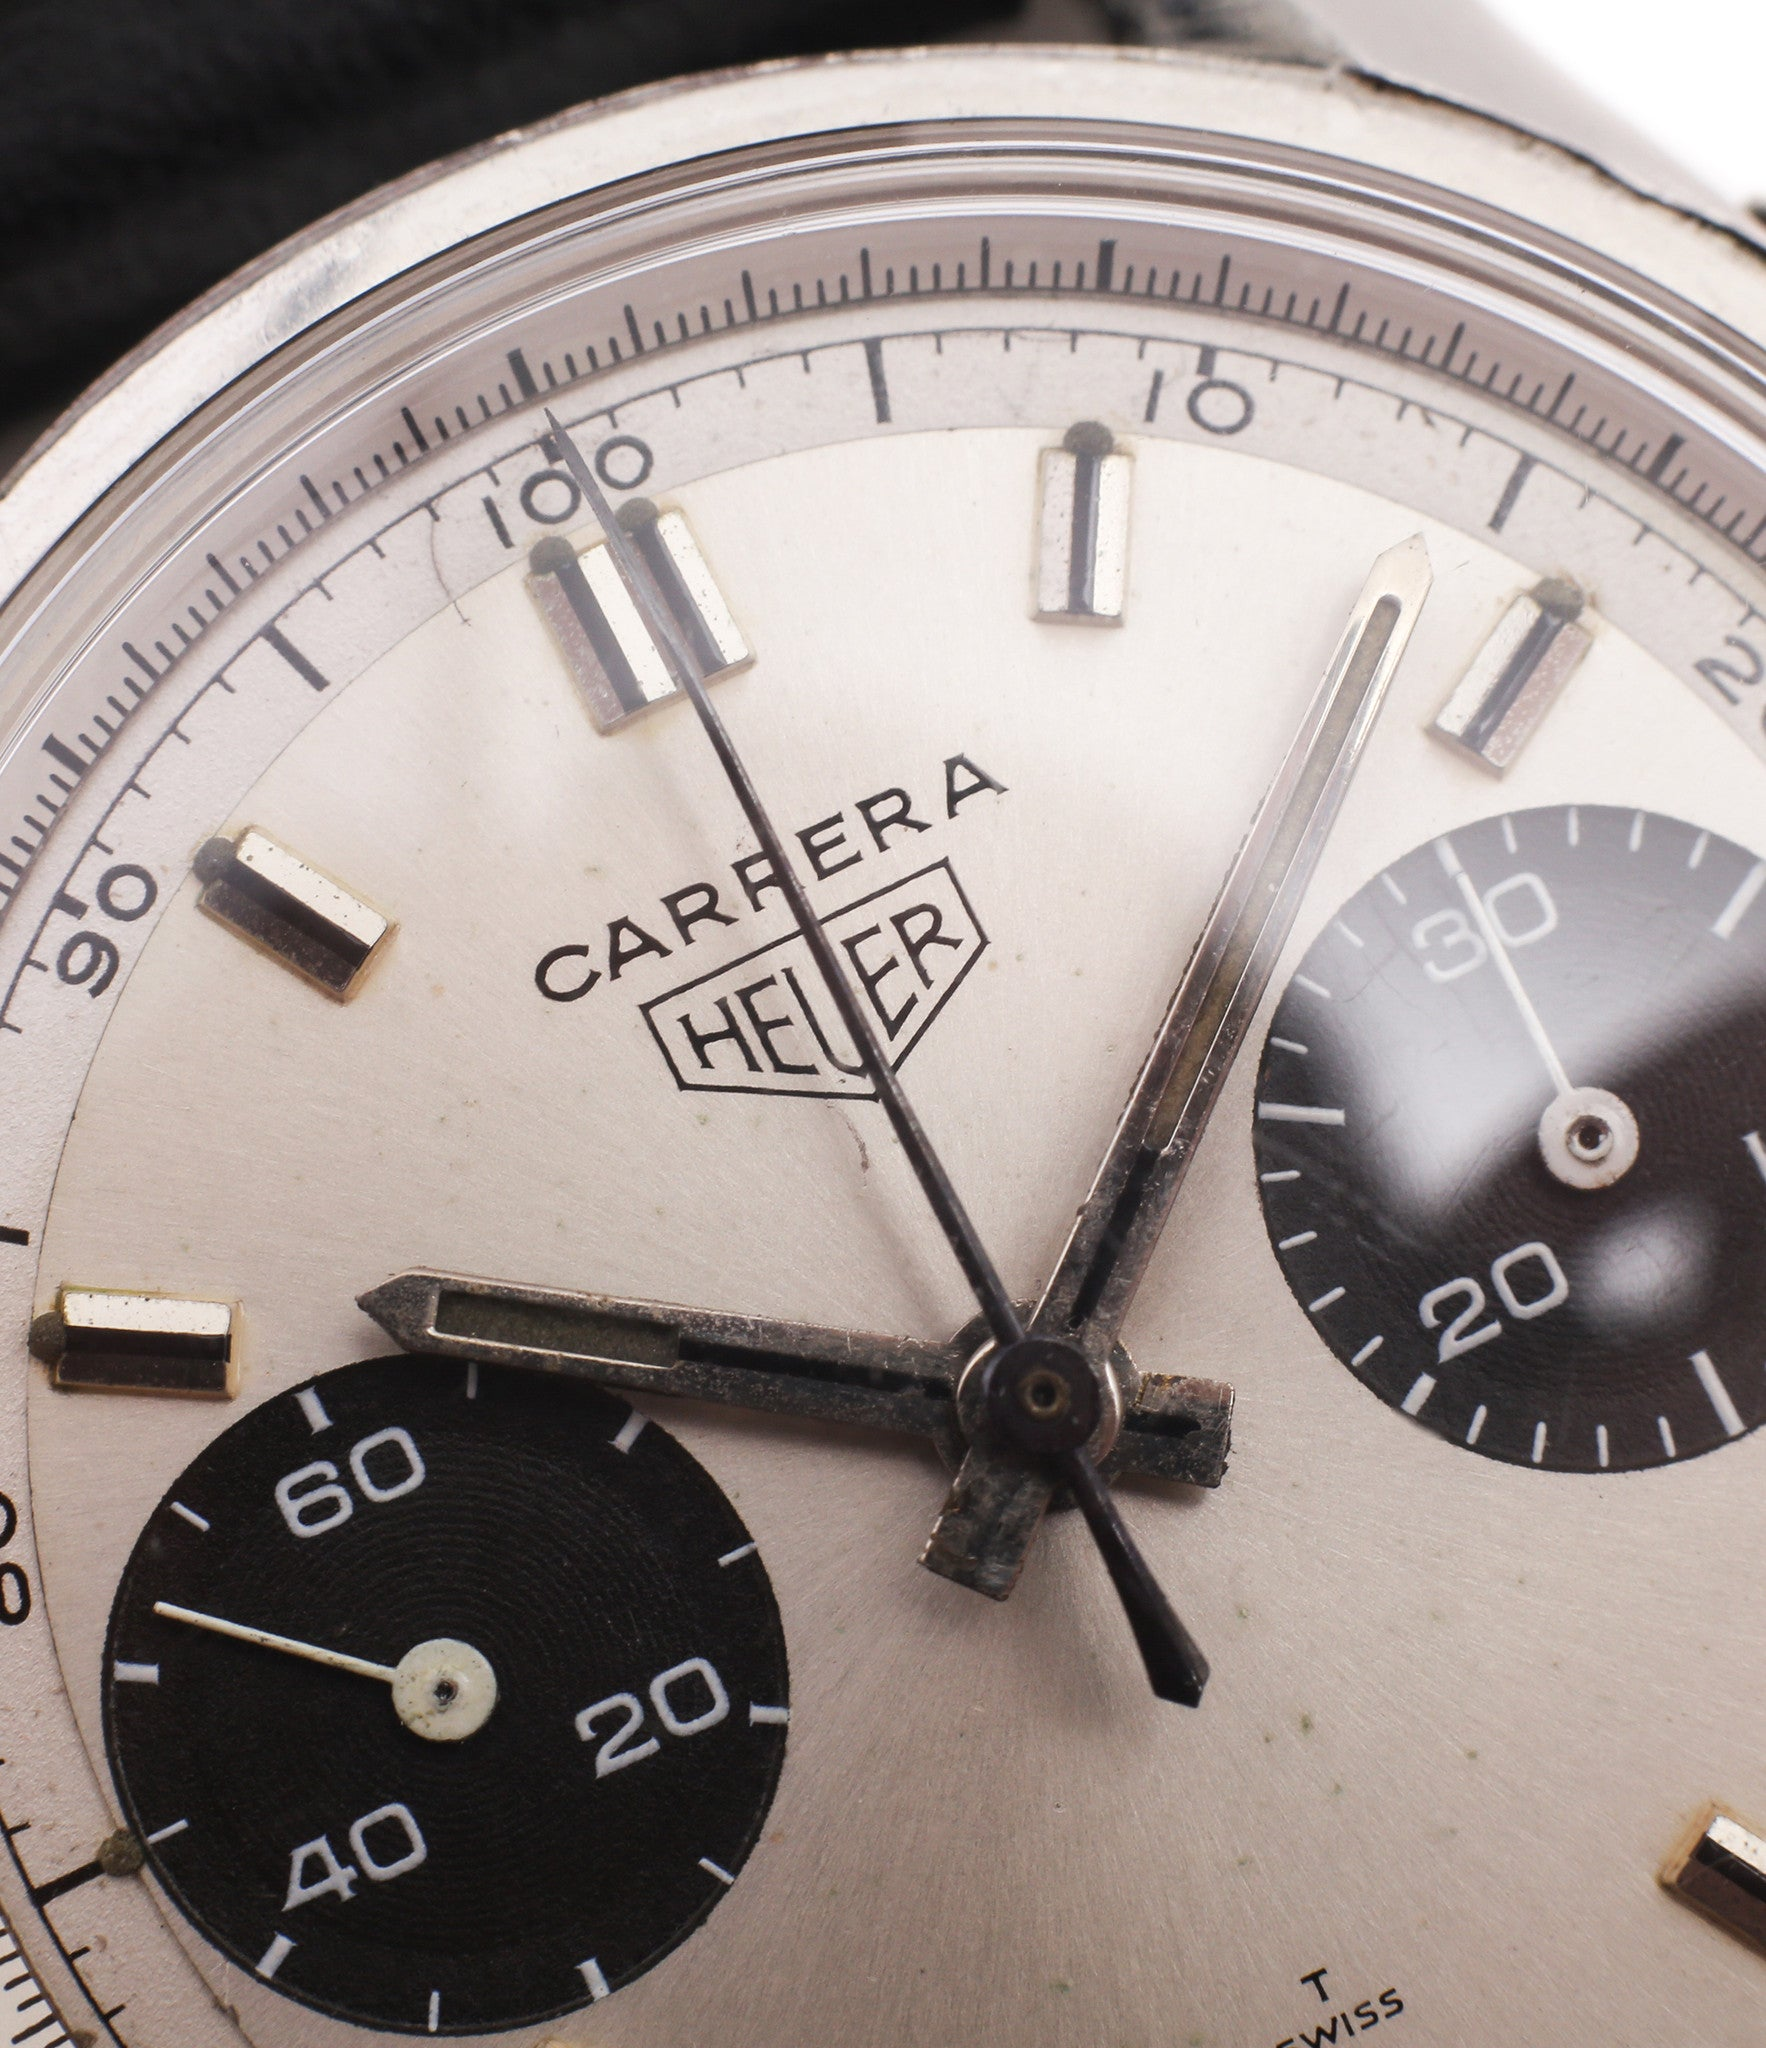 two-register chronograph Heuer Carrera 7753SND vintage sports watch panda dial online at A Collected Man